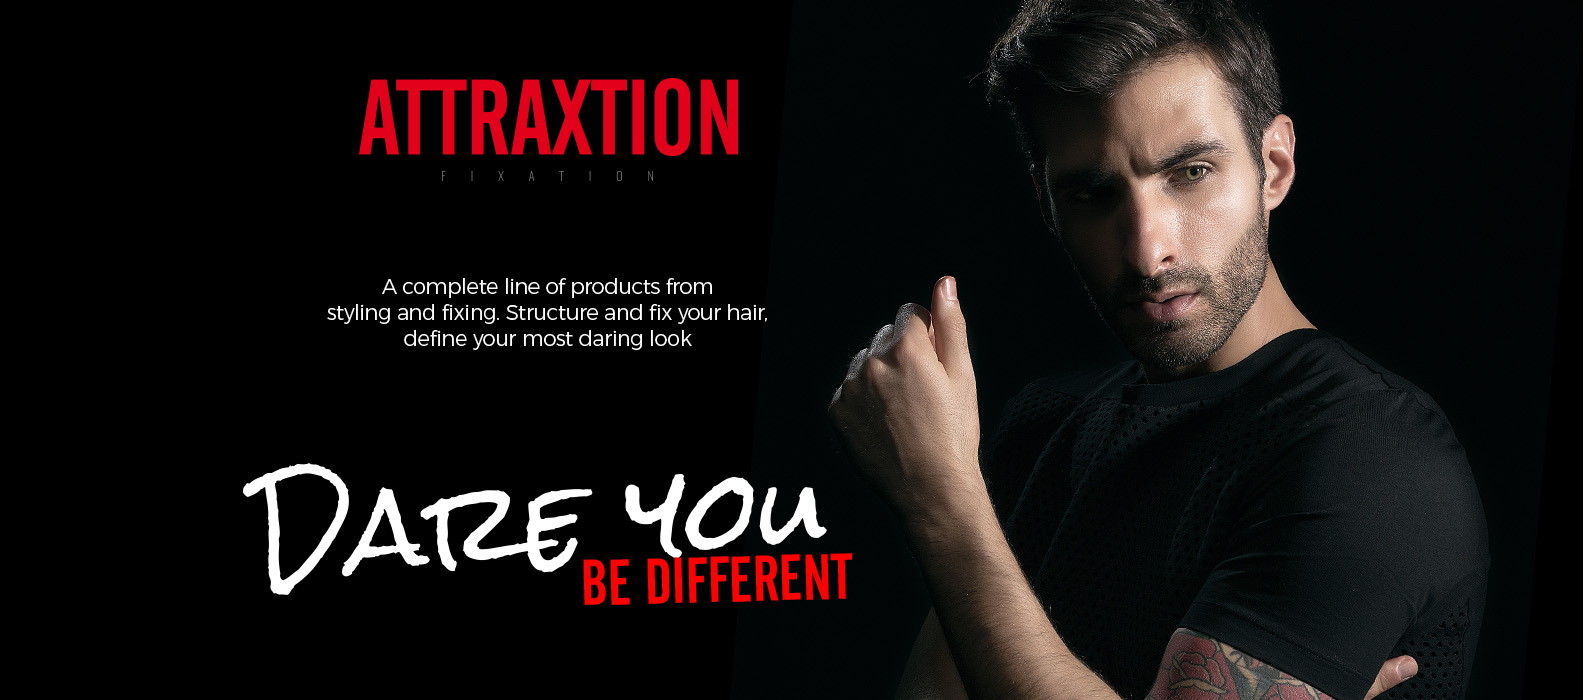 Attraxtion - Dare You, Be Different - Mov